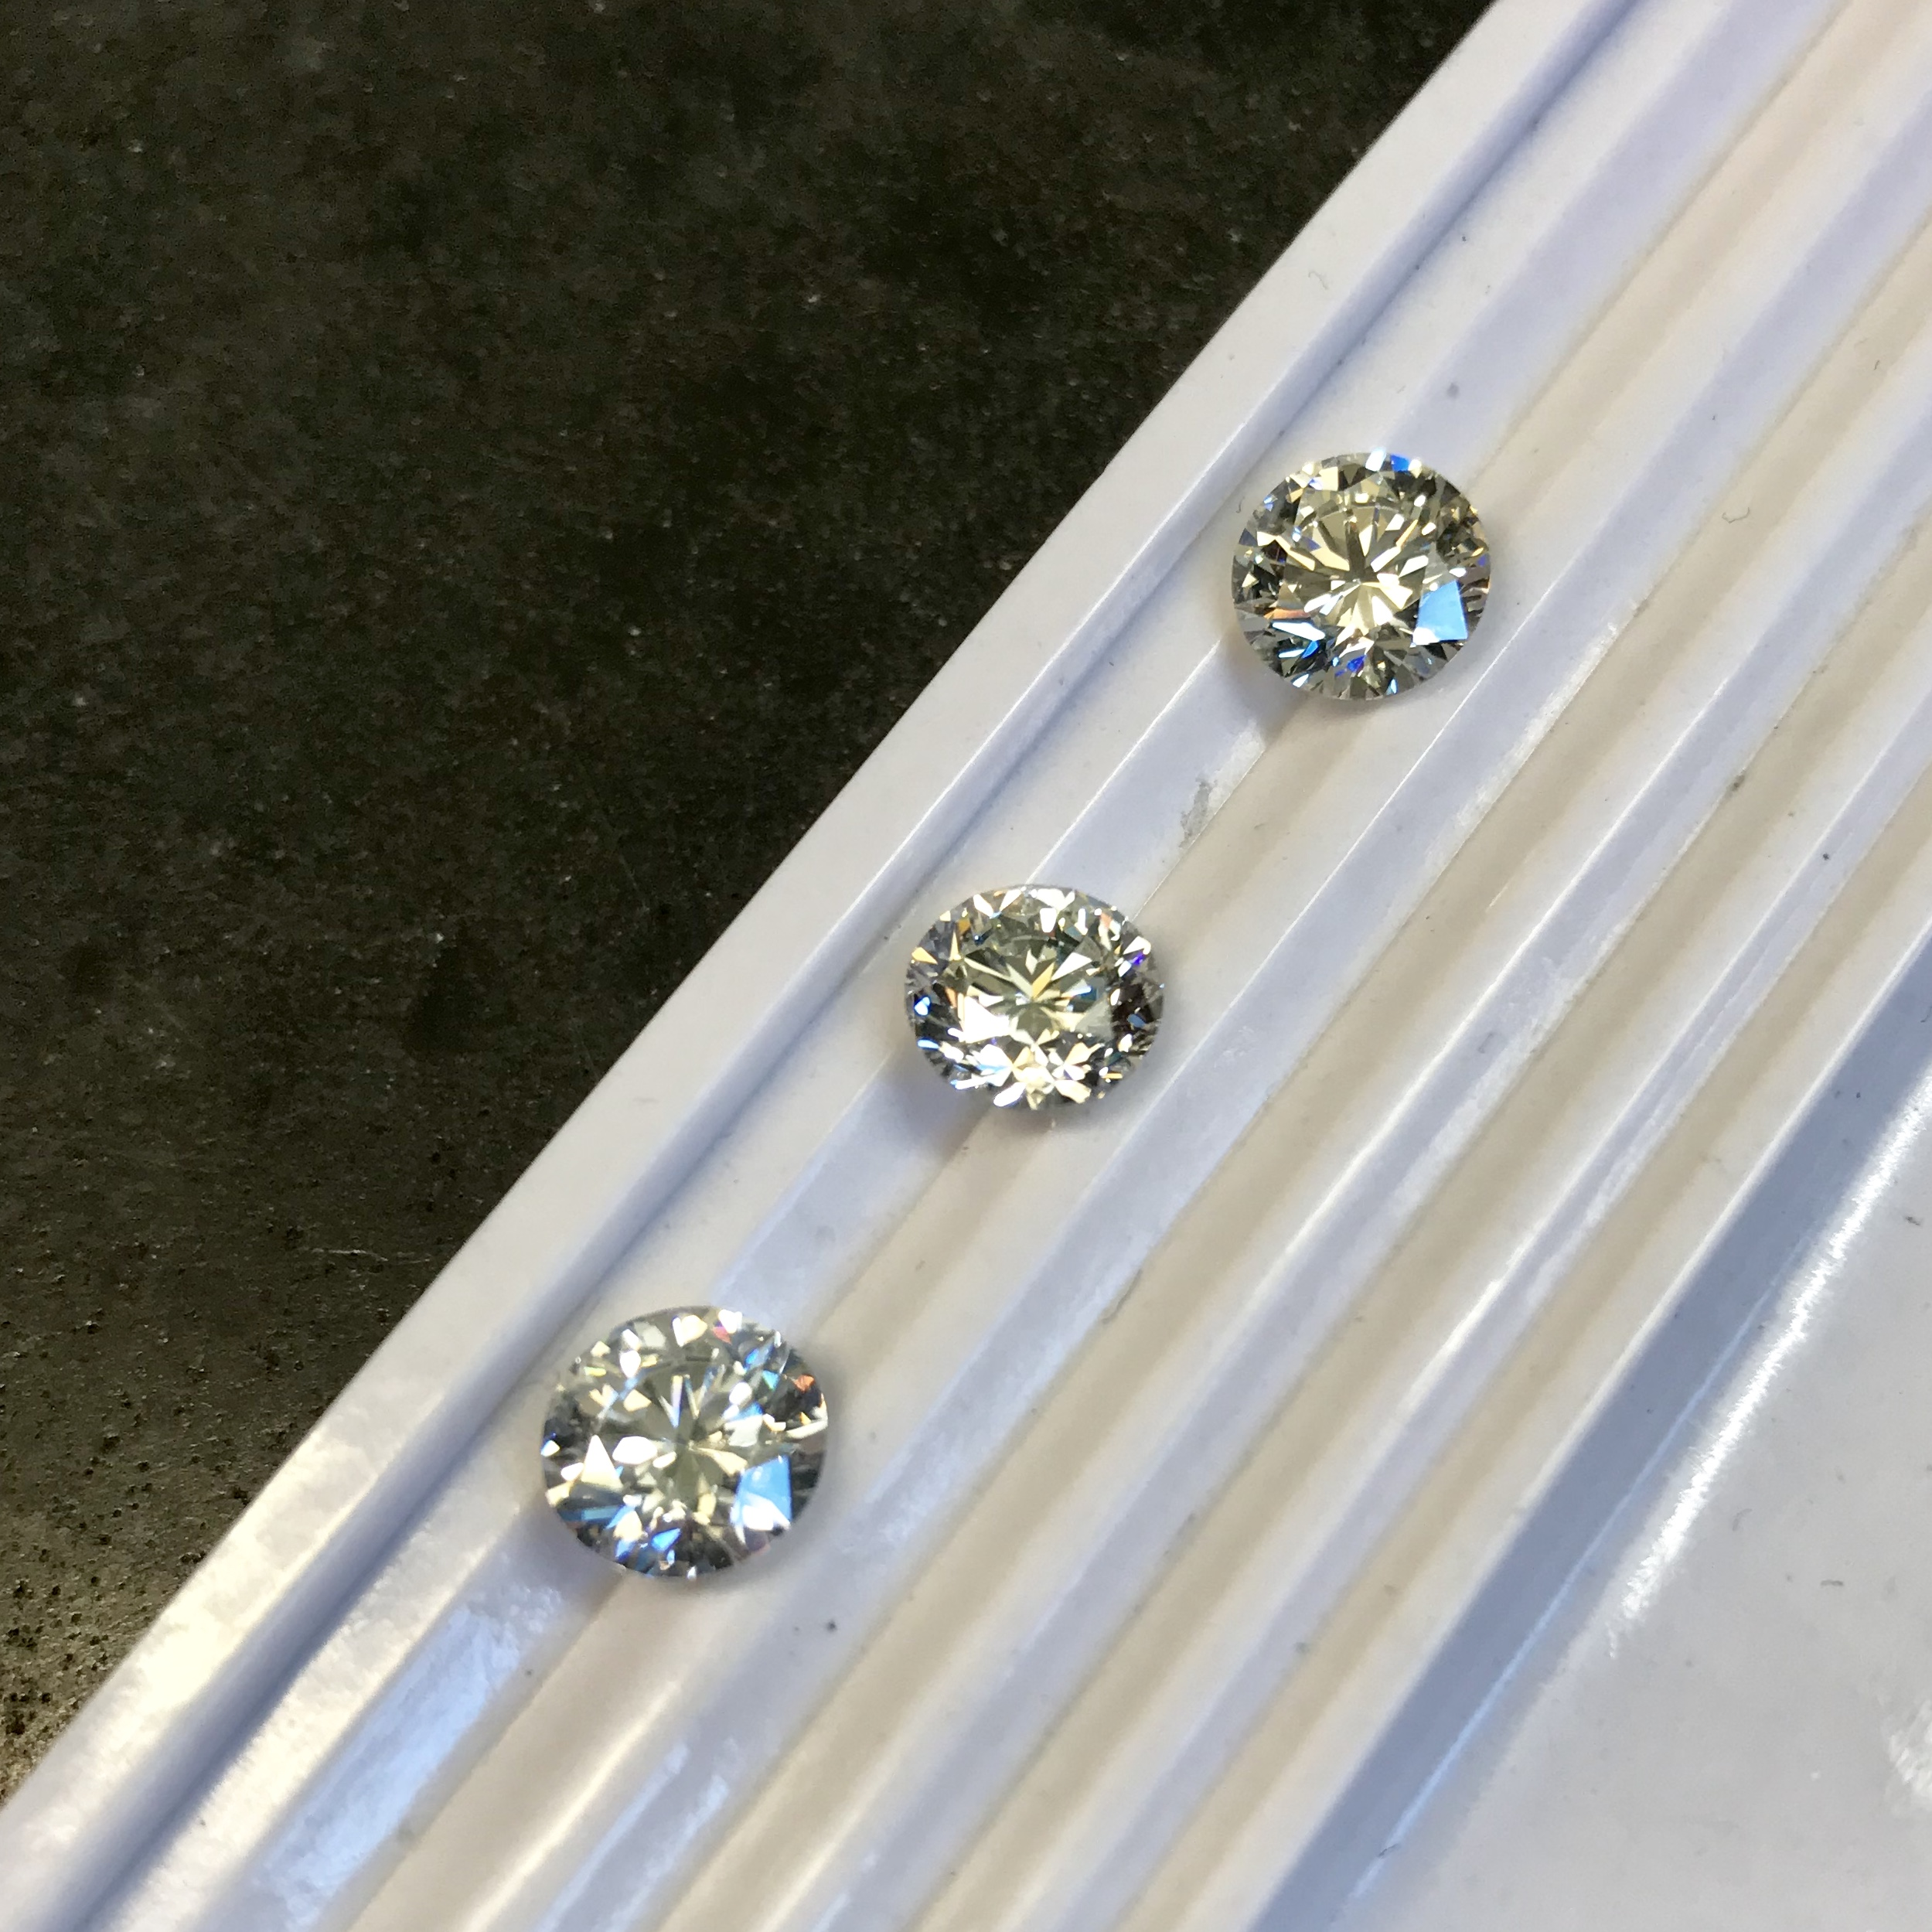 Stone selecting - Picking the best 2ct Diamond for a special pendant order.